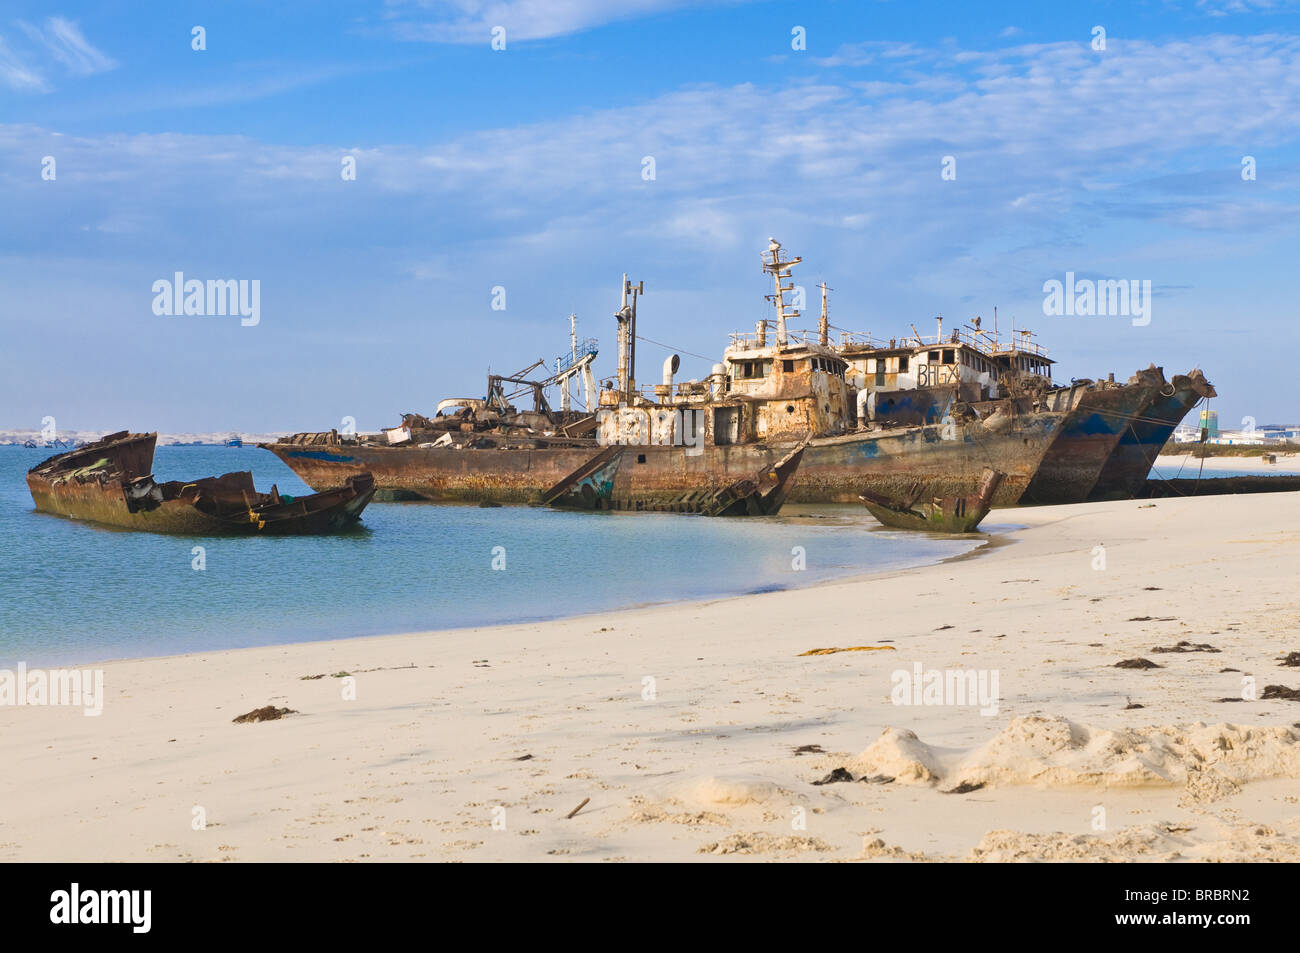 Stranded vessels lying in the ship graveyard of Nouadhibou, Mauritania - Stock Image